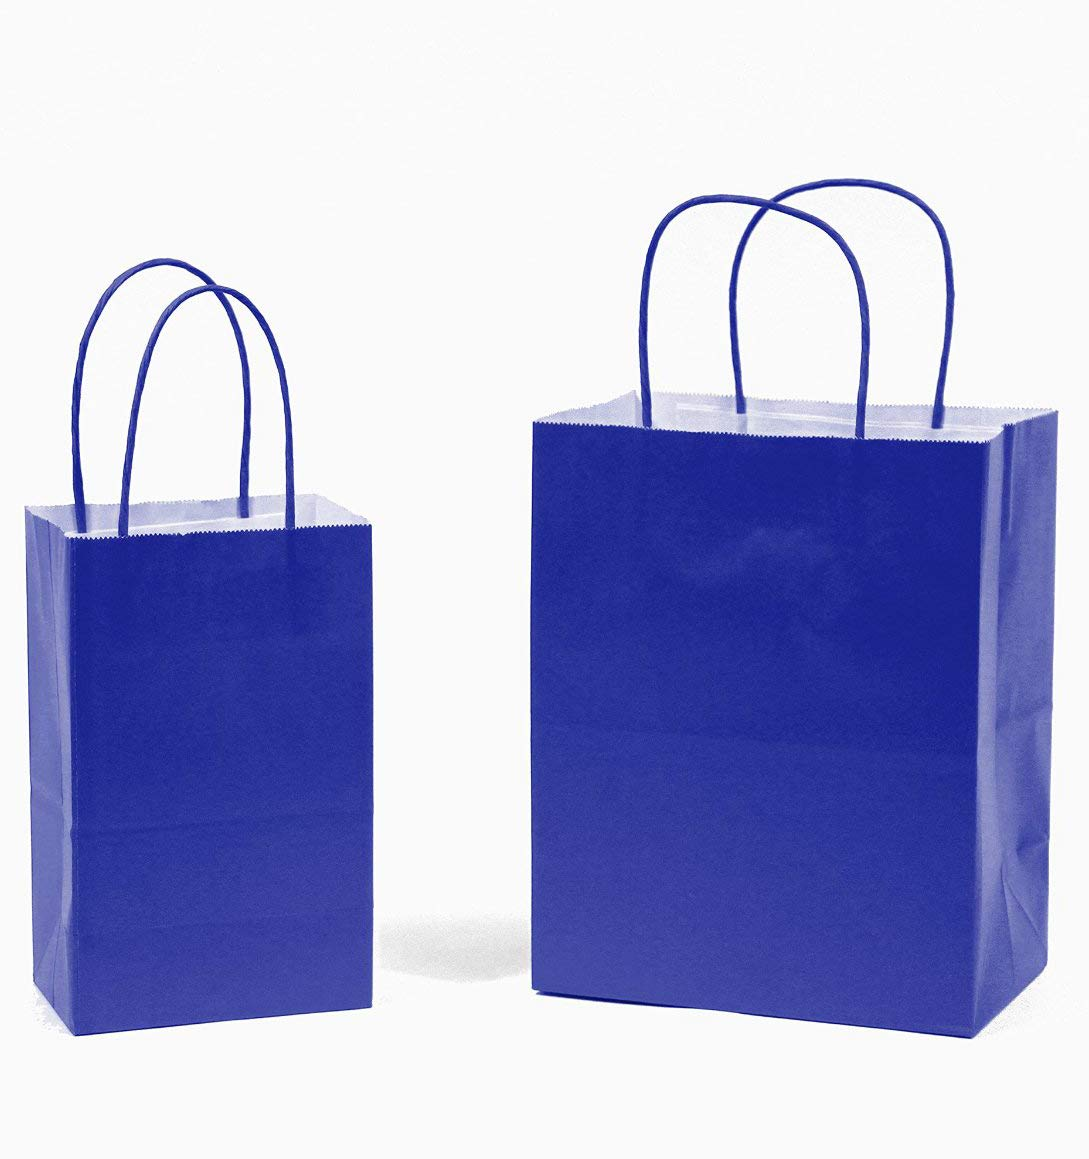 Amazon.com: Bolsas de regalo de papel kraft de color sólido ...